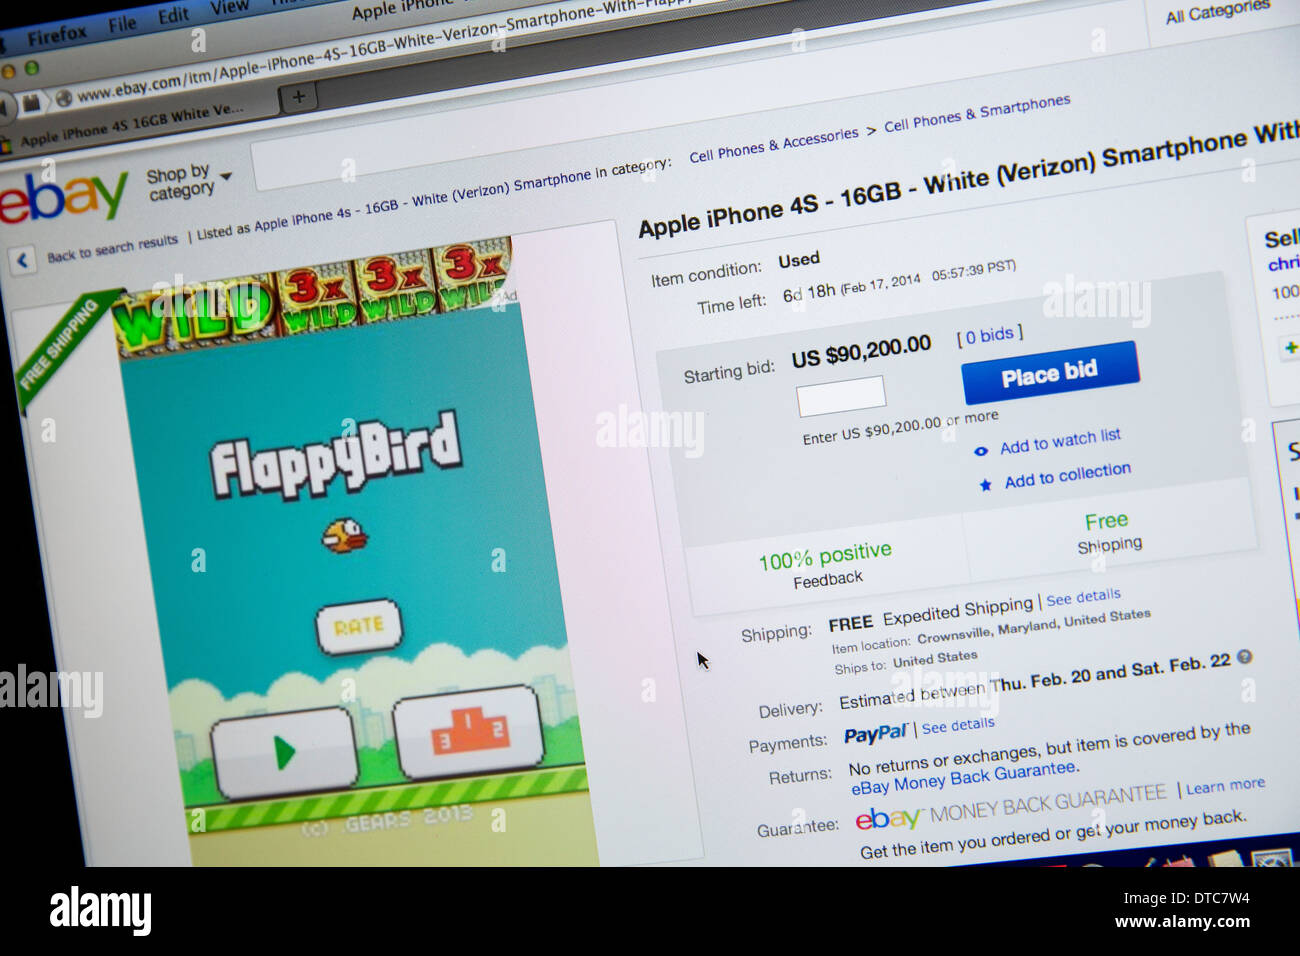 A used iPhone loaded with the FlappyBird app listed on eBay